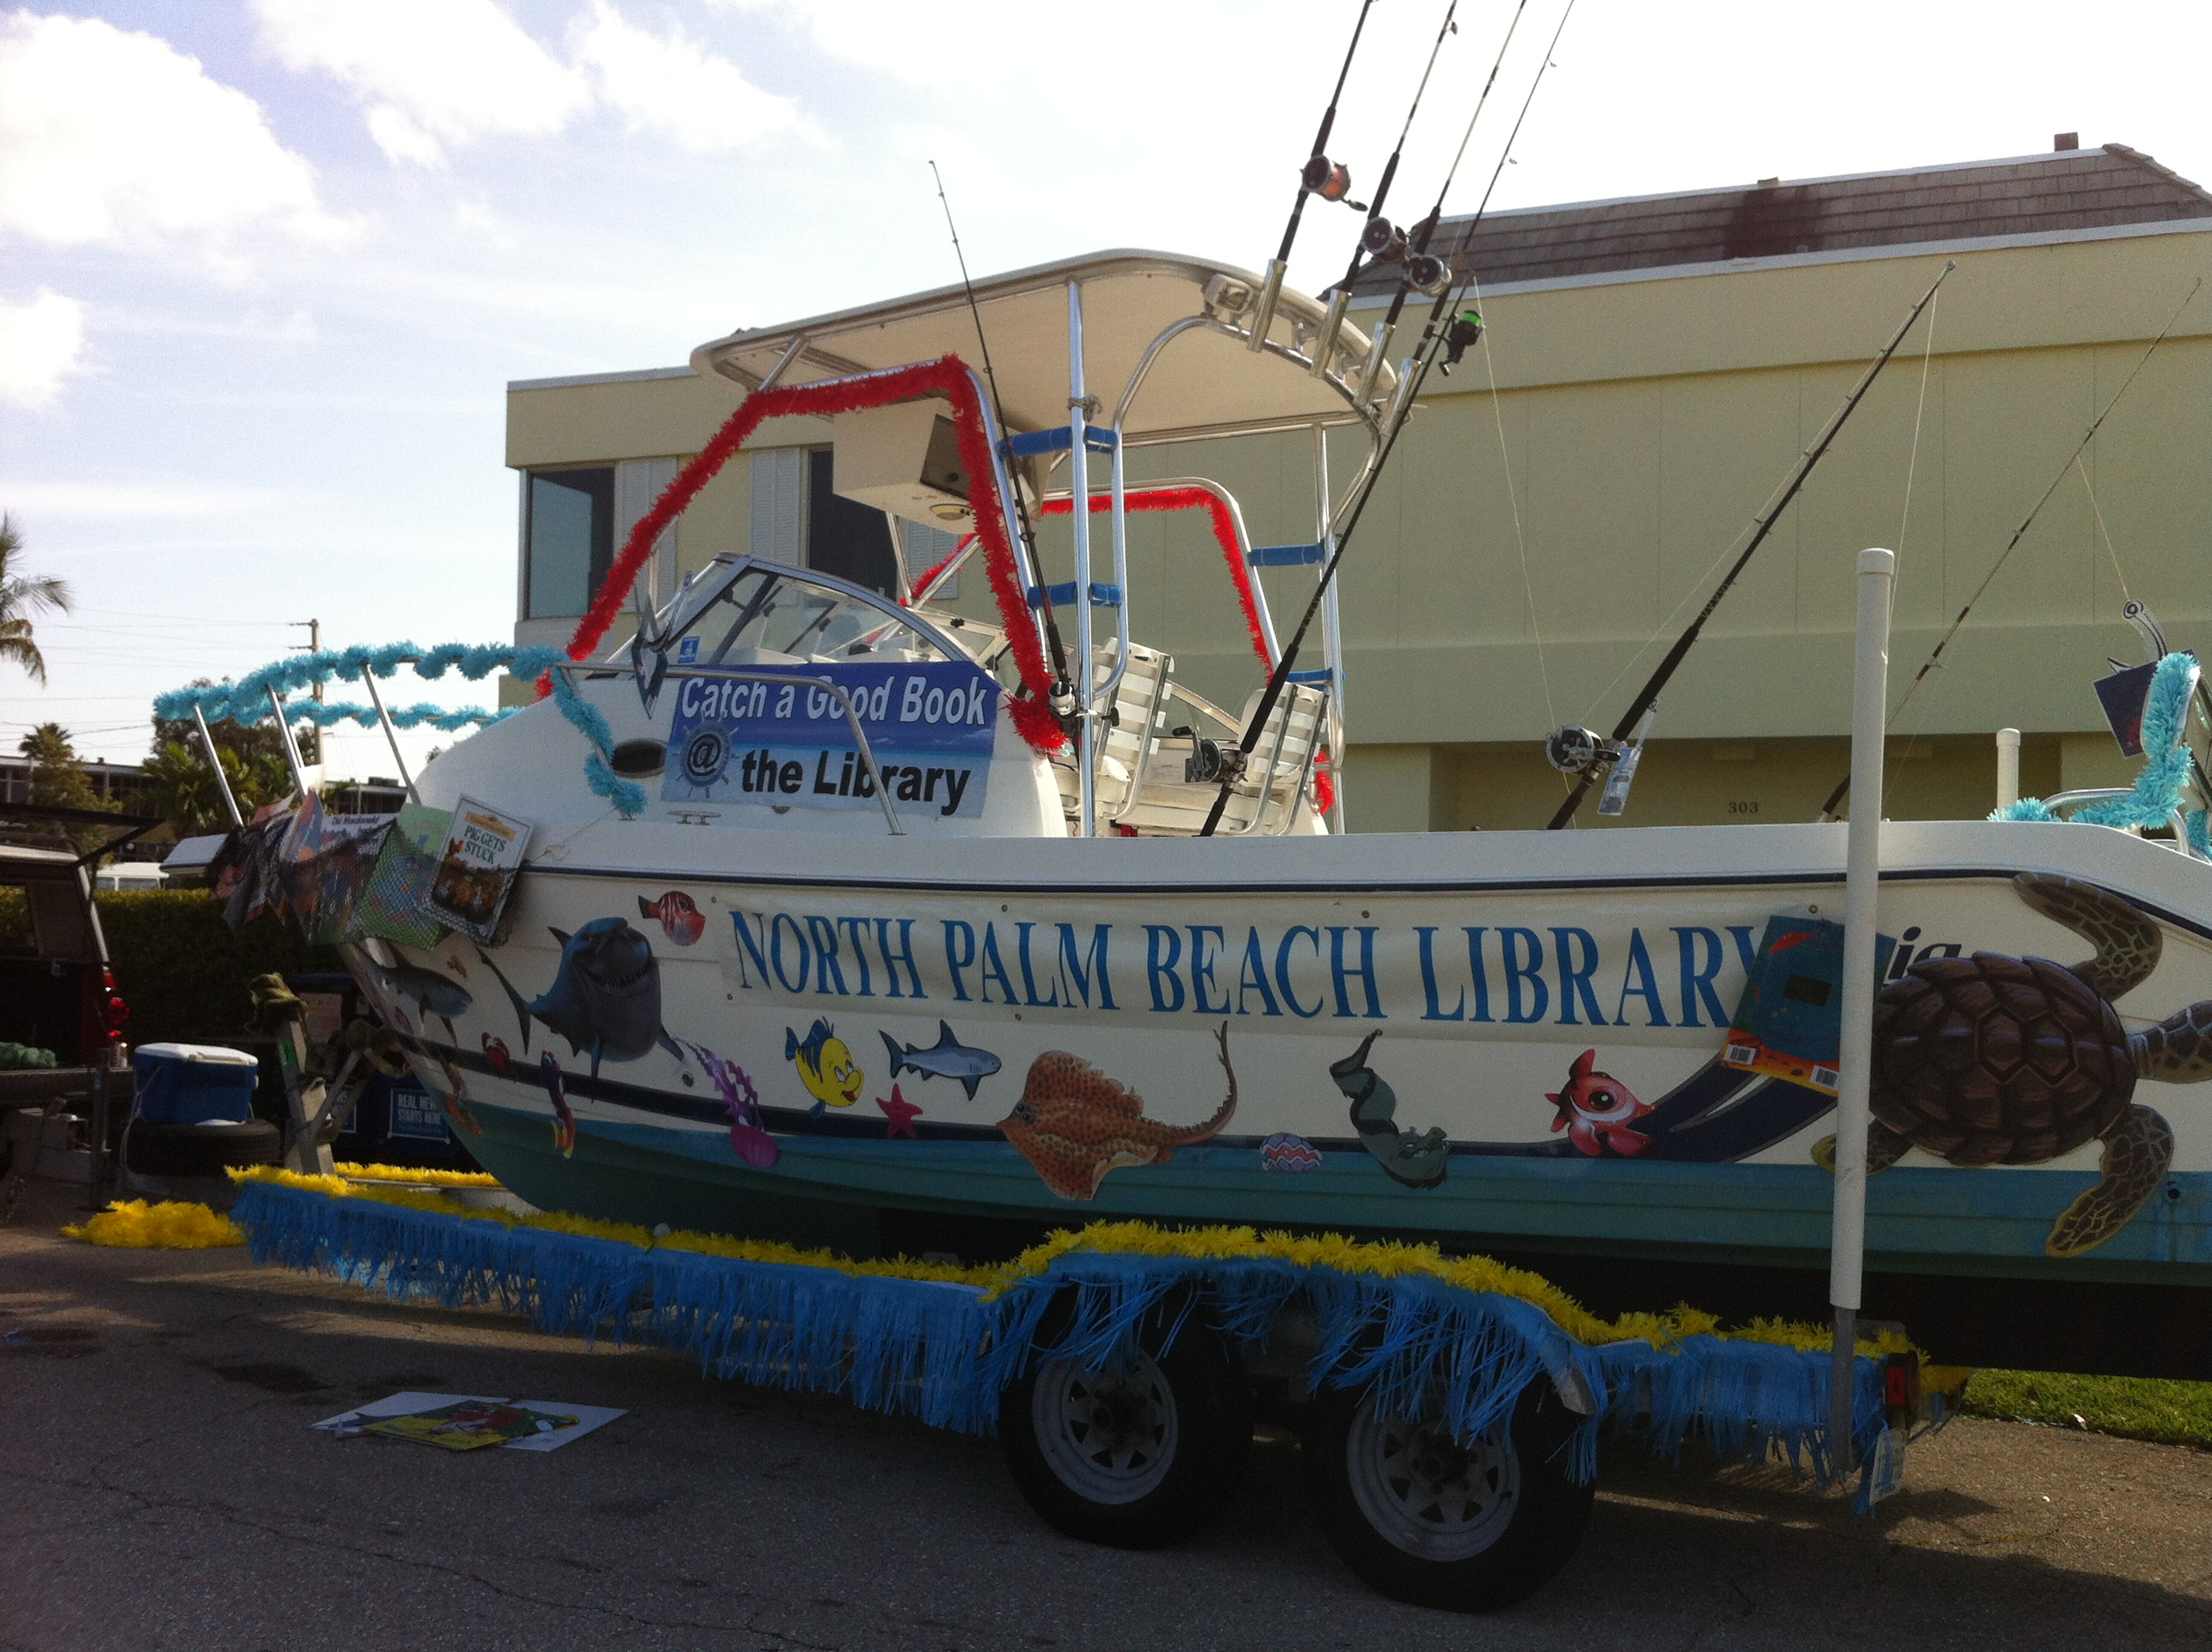 The North Palm Beach Library Float in the parade